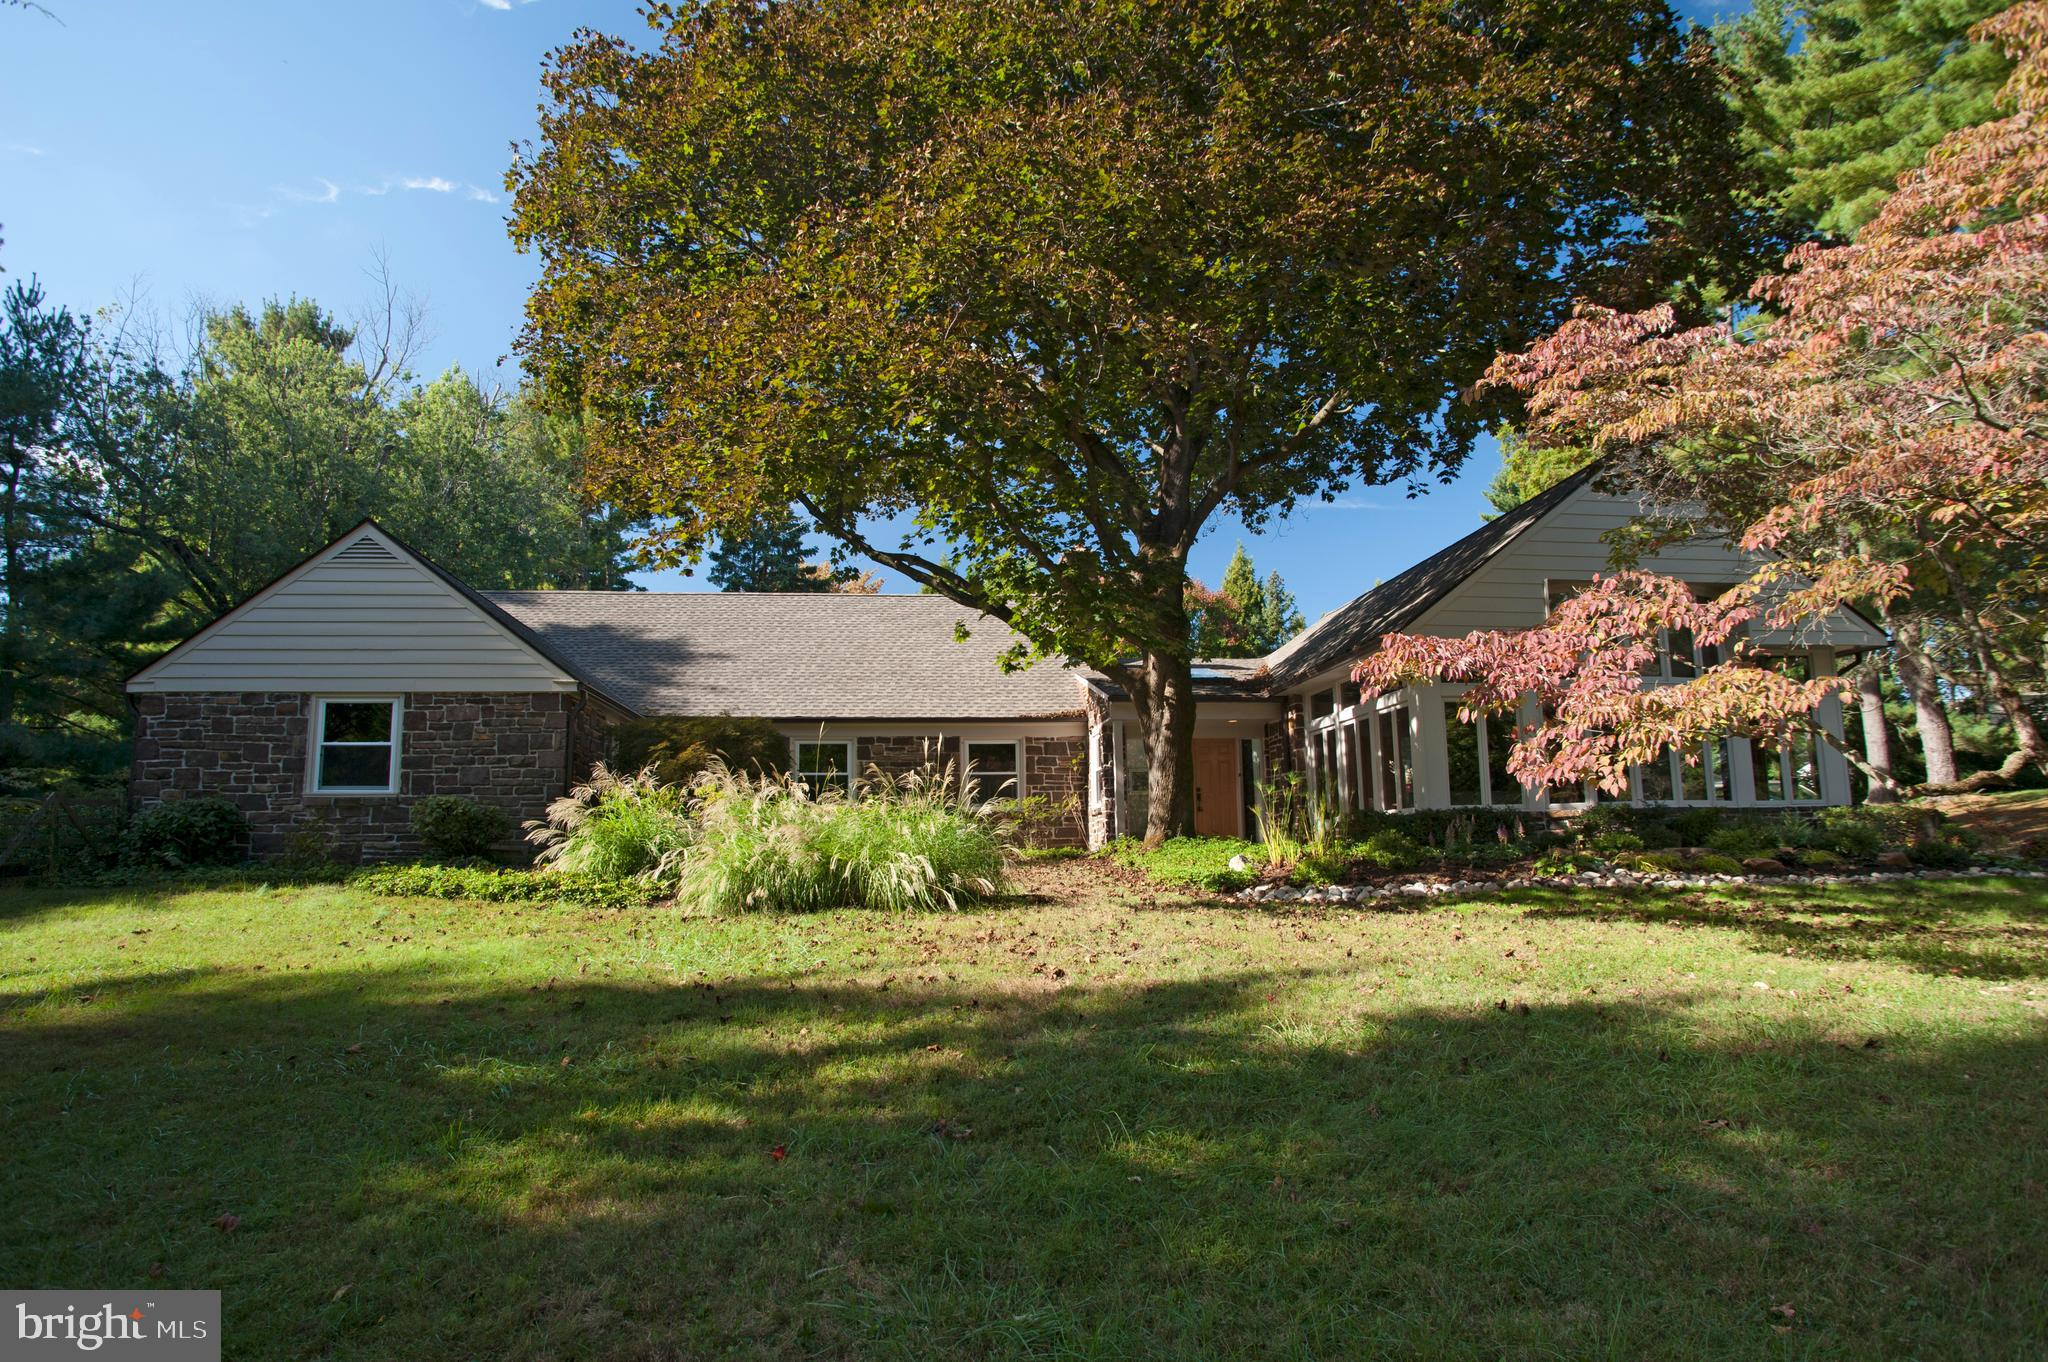 """Welcome to this wonderful 4 Bed/4.2 Bath, Stone Cape Cod!! It is on a quiet Cul-de-Sac street and perfectly situated for privacy, but in walking distance to the heart of Gladwyne and Bridlewile Trails. The house was fully renovated over the last 5 years.  No room during the renovations remained untouched. The expanded Eat-in Kitchen ties in with the Family Room and Formal Dining space, which is optimal for entertaining. A separate beverage/coffee centers and center island with copper prep sink and rustic wood countertop, give the Kitchen additional prep space and storage. A Gourment Kitchen-Aid Appliances package includes a 36"""" gas cook top w/ range hood, double oven convection microwave w/ warming drawer. From every room along the back of the house, you can access the fenced in, flat yard with the heated pool. In 2015 the pool was converted to a SALT WATER system. The large outdoor, attached shed was even converted into a fantastic mini kitchen and OUTSIDE SHOWER! The Owner had professional rendering done for an expansive outdoor Kitchen and stone patio with outdoor fireplace. A Contractor crew is at your fingertips to finish the outdoor oasis to your liking, before the end of the year. There is separate room for storing pool equipment or use as a changing room. Outdoor entertaining at its finest. Back inside, the Main Floor MASTER SUITE offers a very large on-suite bathroom with an 8' wide his & her walk-in shower w/ seamless shower glass. The two walk-in closets and a 3rd closet Hall Closet provide a ton of his & her space! The remaining 3 Bedrooms each have their own designated bathroom w/ tub. There is also a FABULOUS 2-Story, 650 sq. ft. BARREL ARCH GREAT ROOM w/ high arched ceilings and large wood cased windows. The original custom built-ins were even re-worked. Moldings on the ceiling and chandeliers help accent the gorgeous arch. This room is evenly divisible for living, working and/or entertaining and is perfect for a pool table or fun nights of dancing in"""